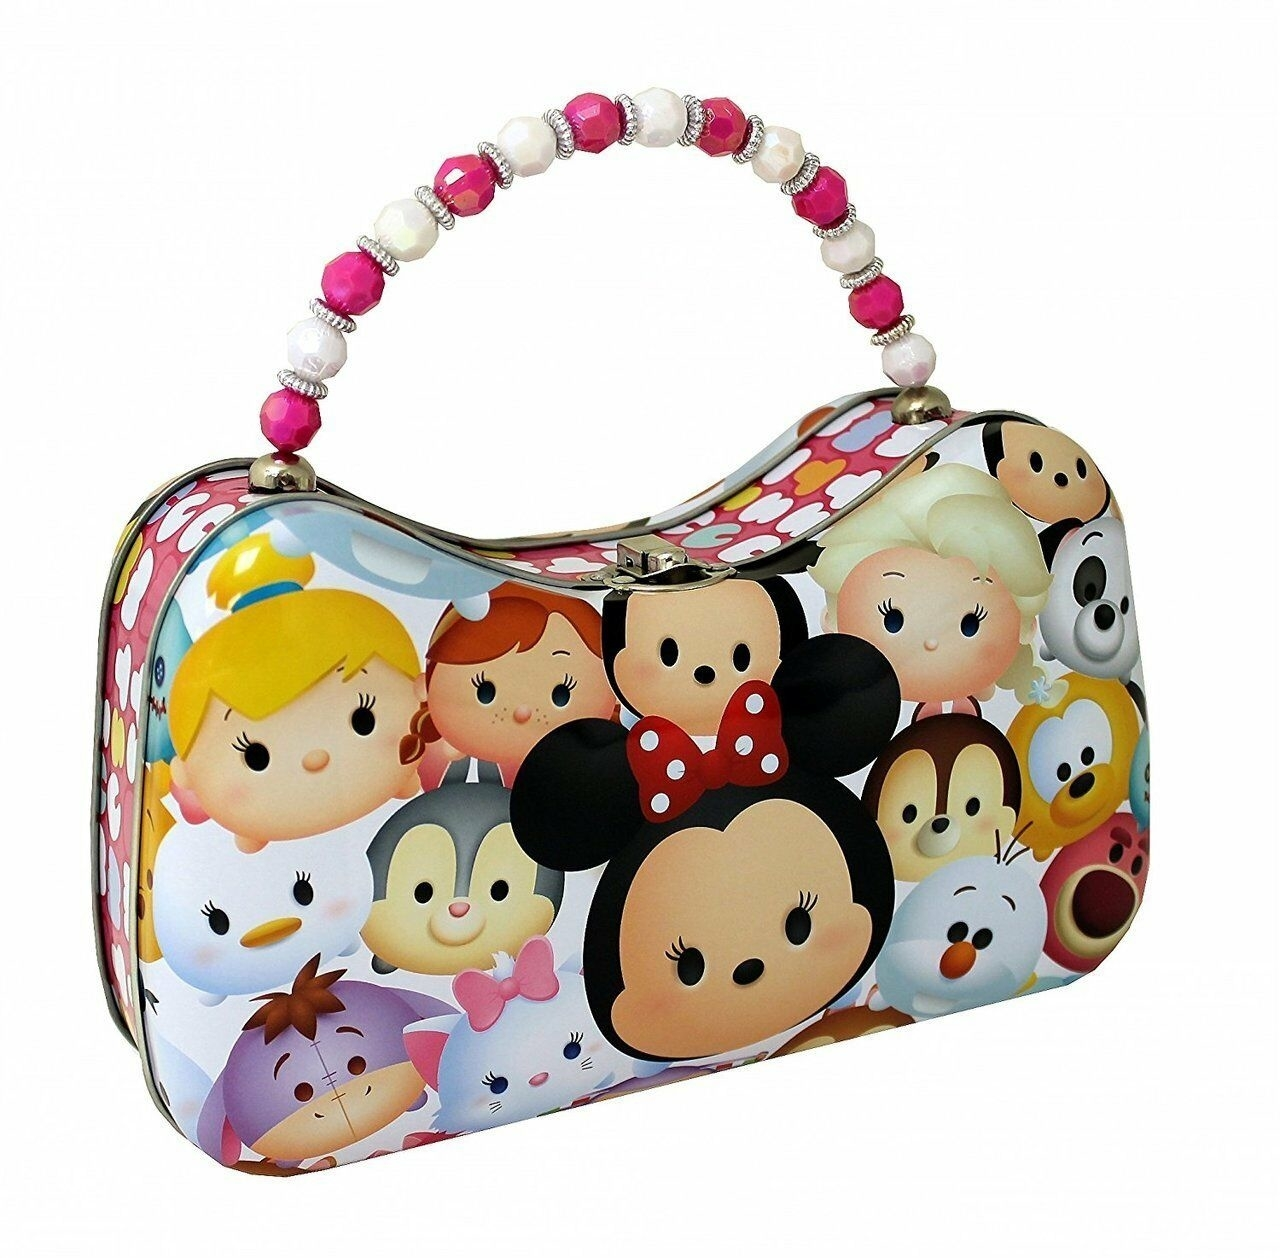 Tsum Tsum Tin Purse with Beaded Handle - Friends (CB9075) photo